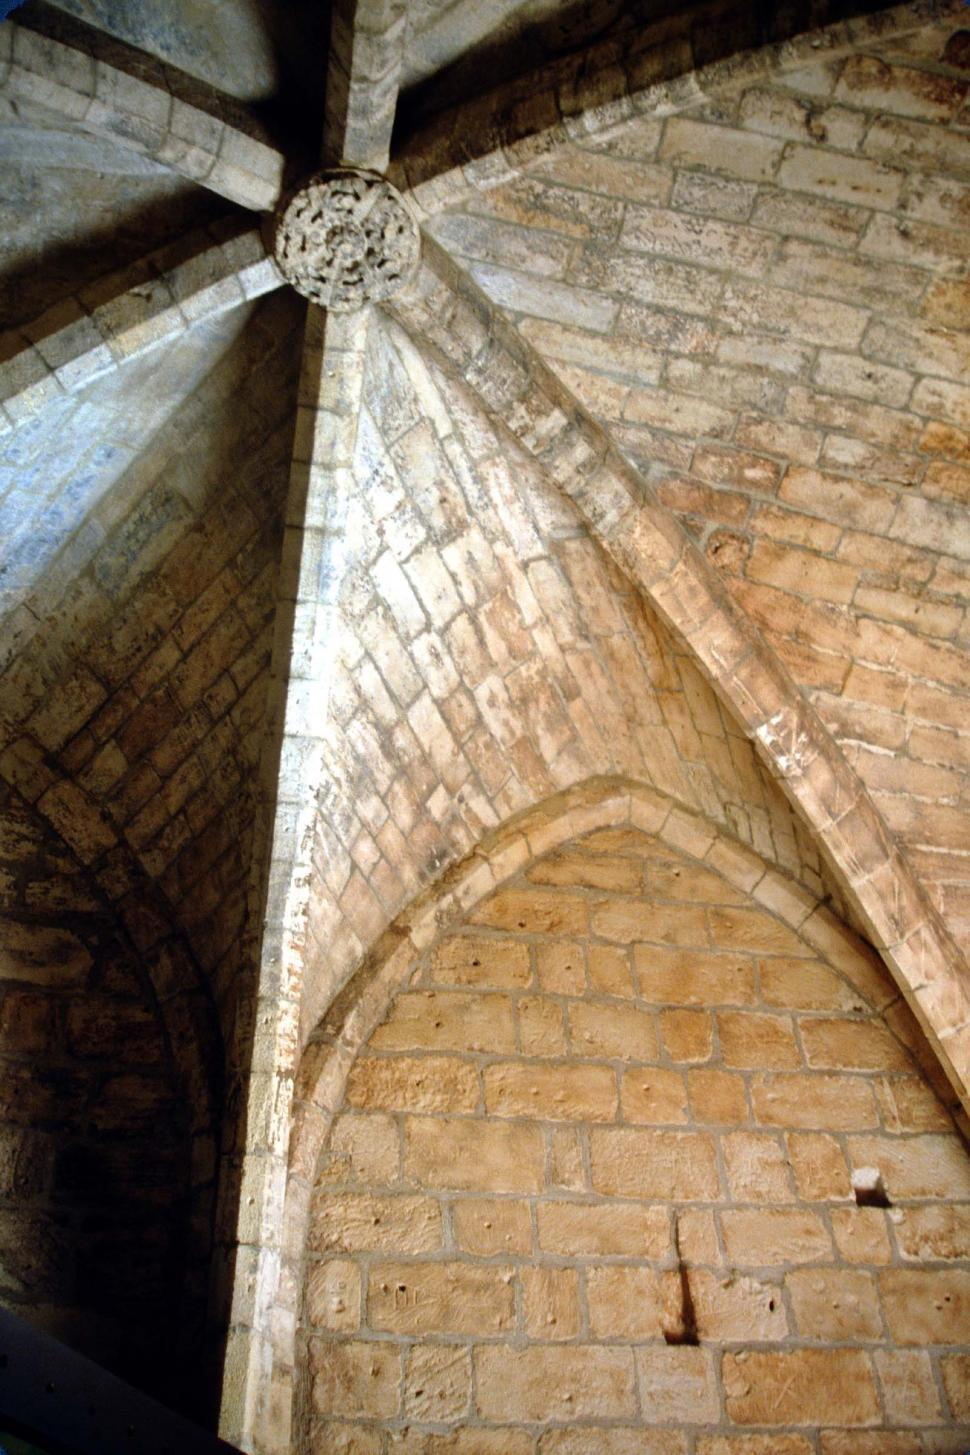 Download Free Stock HD Photo of Vaulted stone ceiling  Online